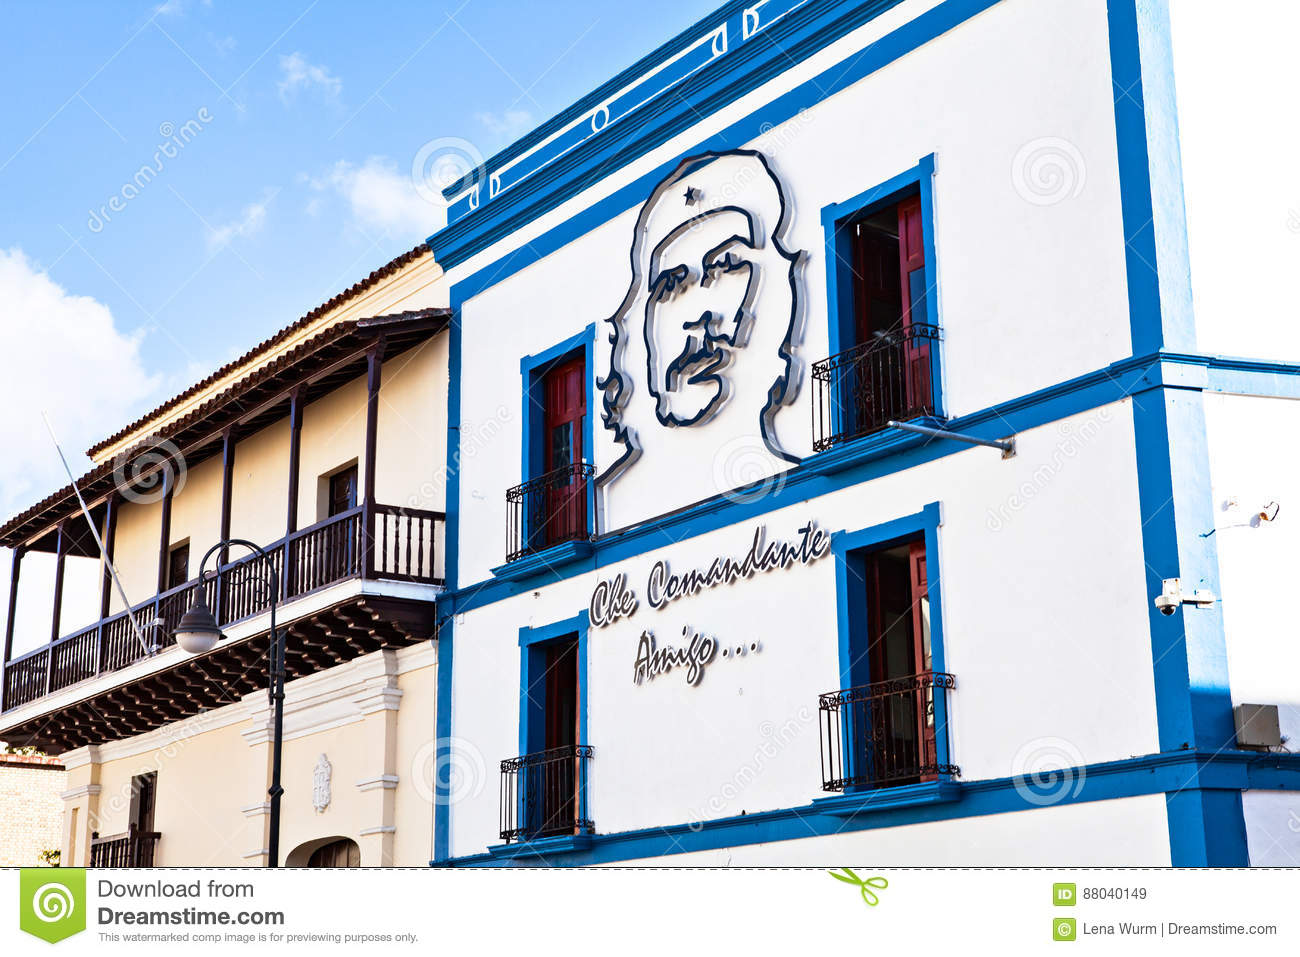 He Camaguey Postal Office on the right with the image of Che Guevara natal house of Ignacio Agramonte.